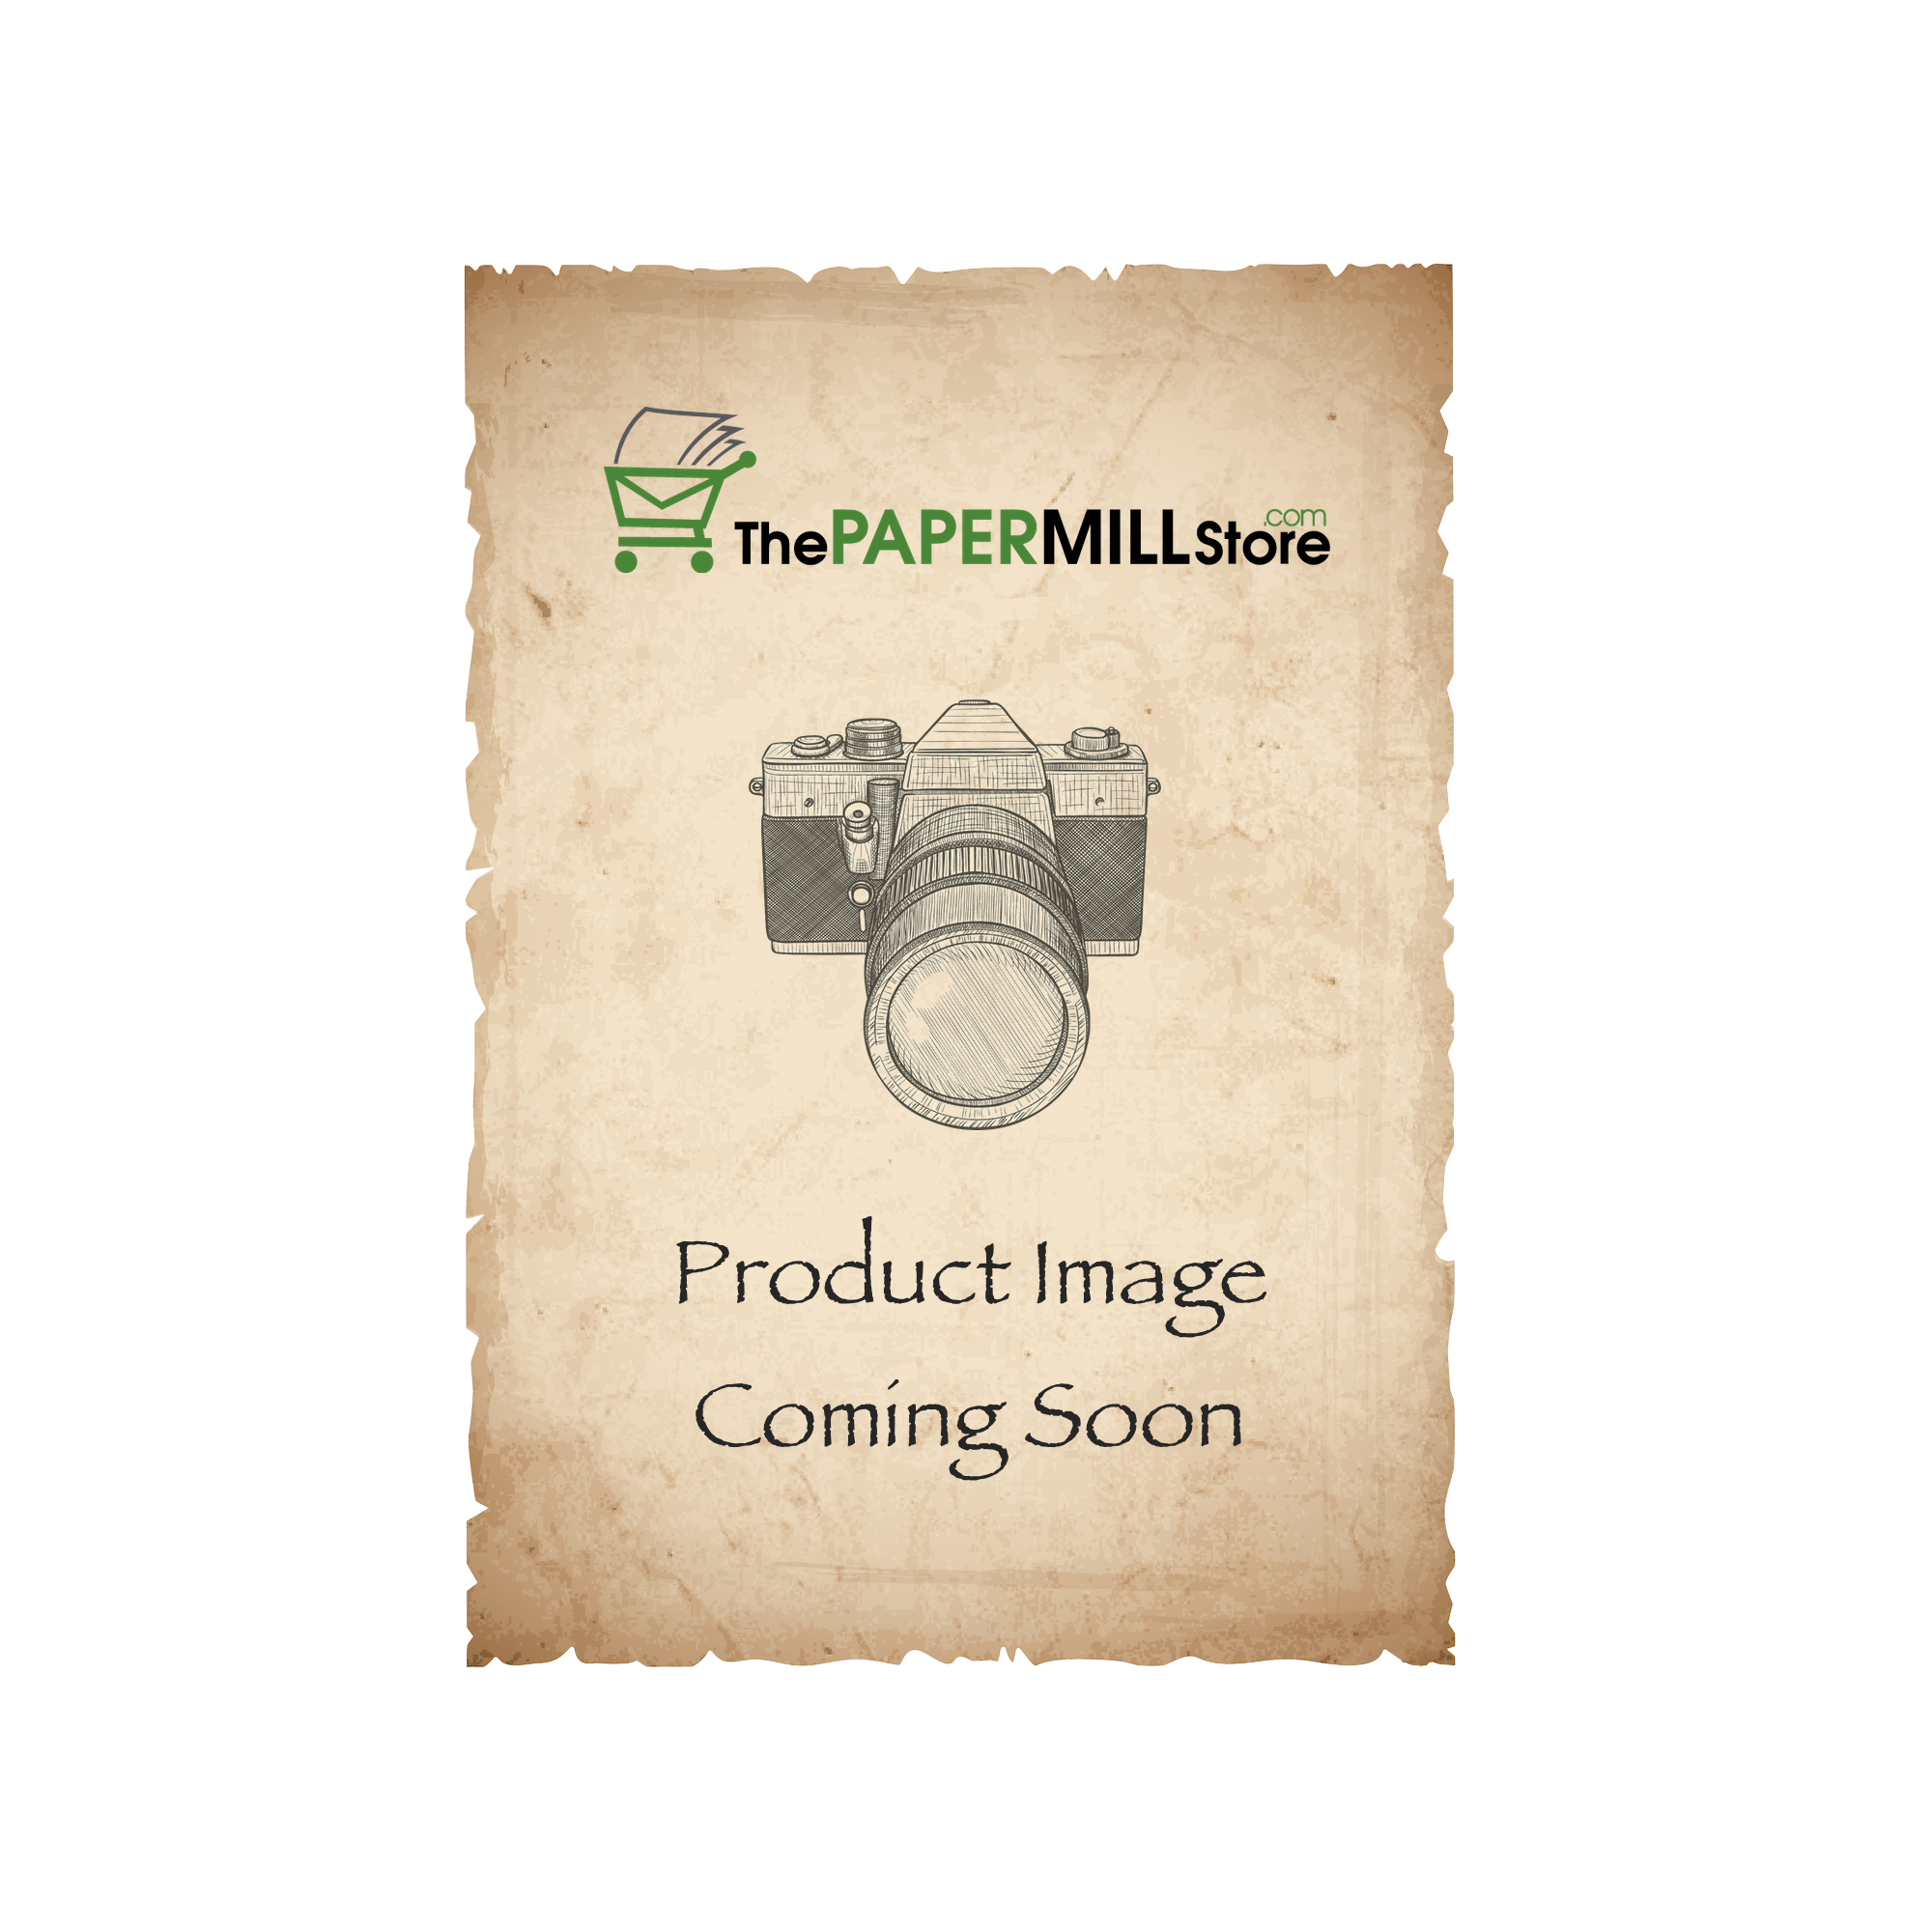 Arturo Blue Folded Cards - Arturo Small Reply Folded (5.12 x 6.7) 96 lb Cover Felt 100 per Box